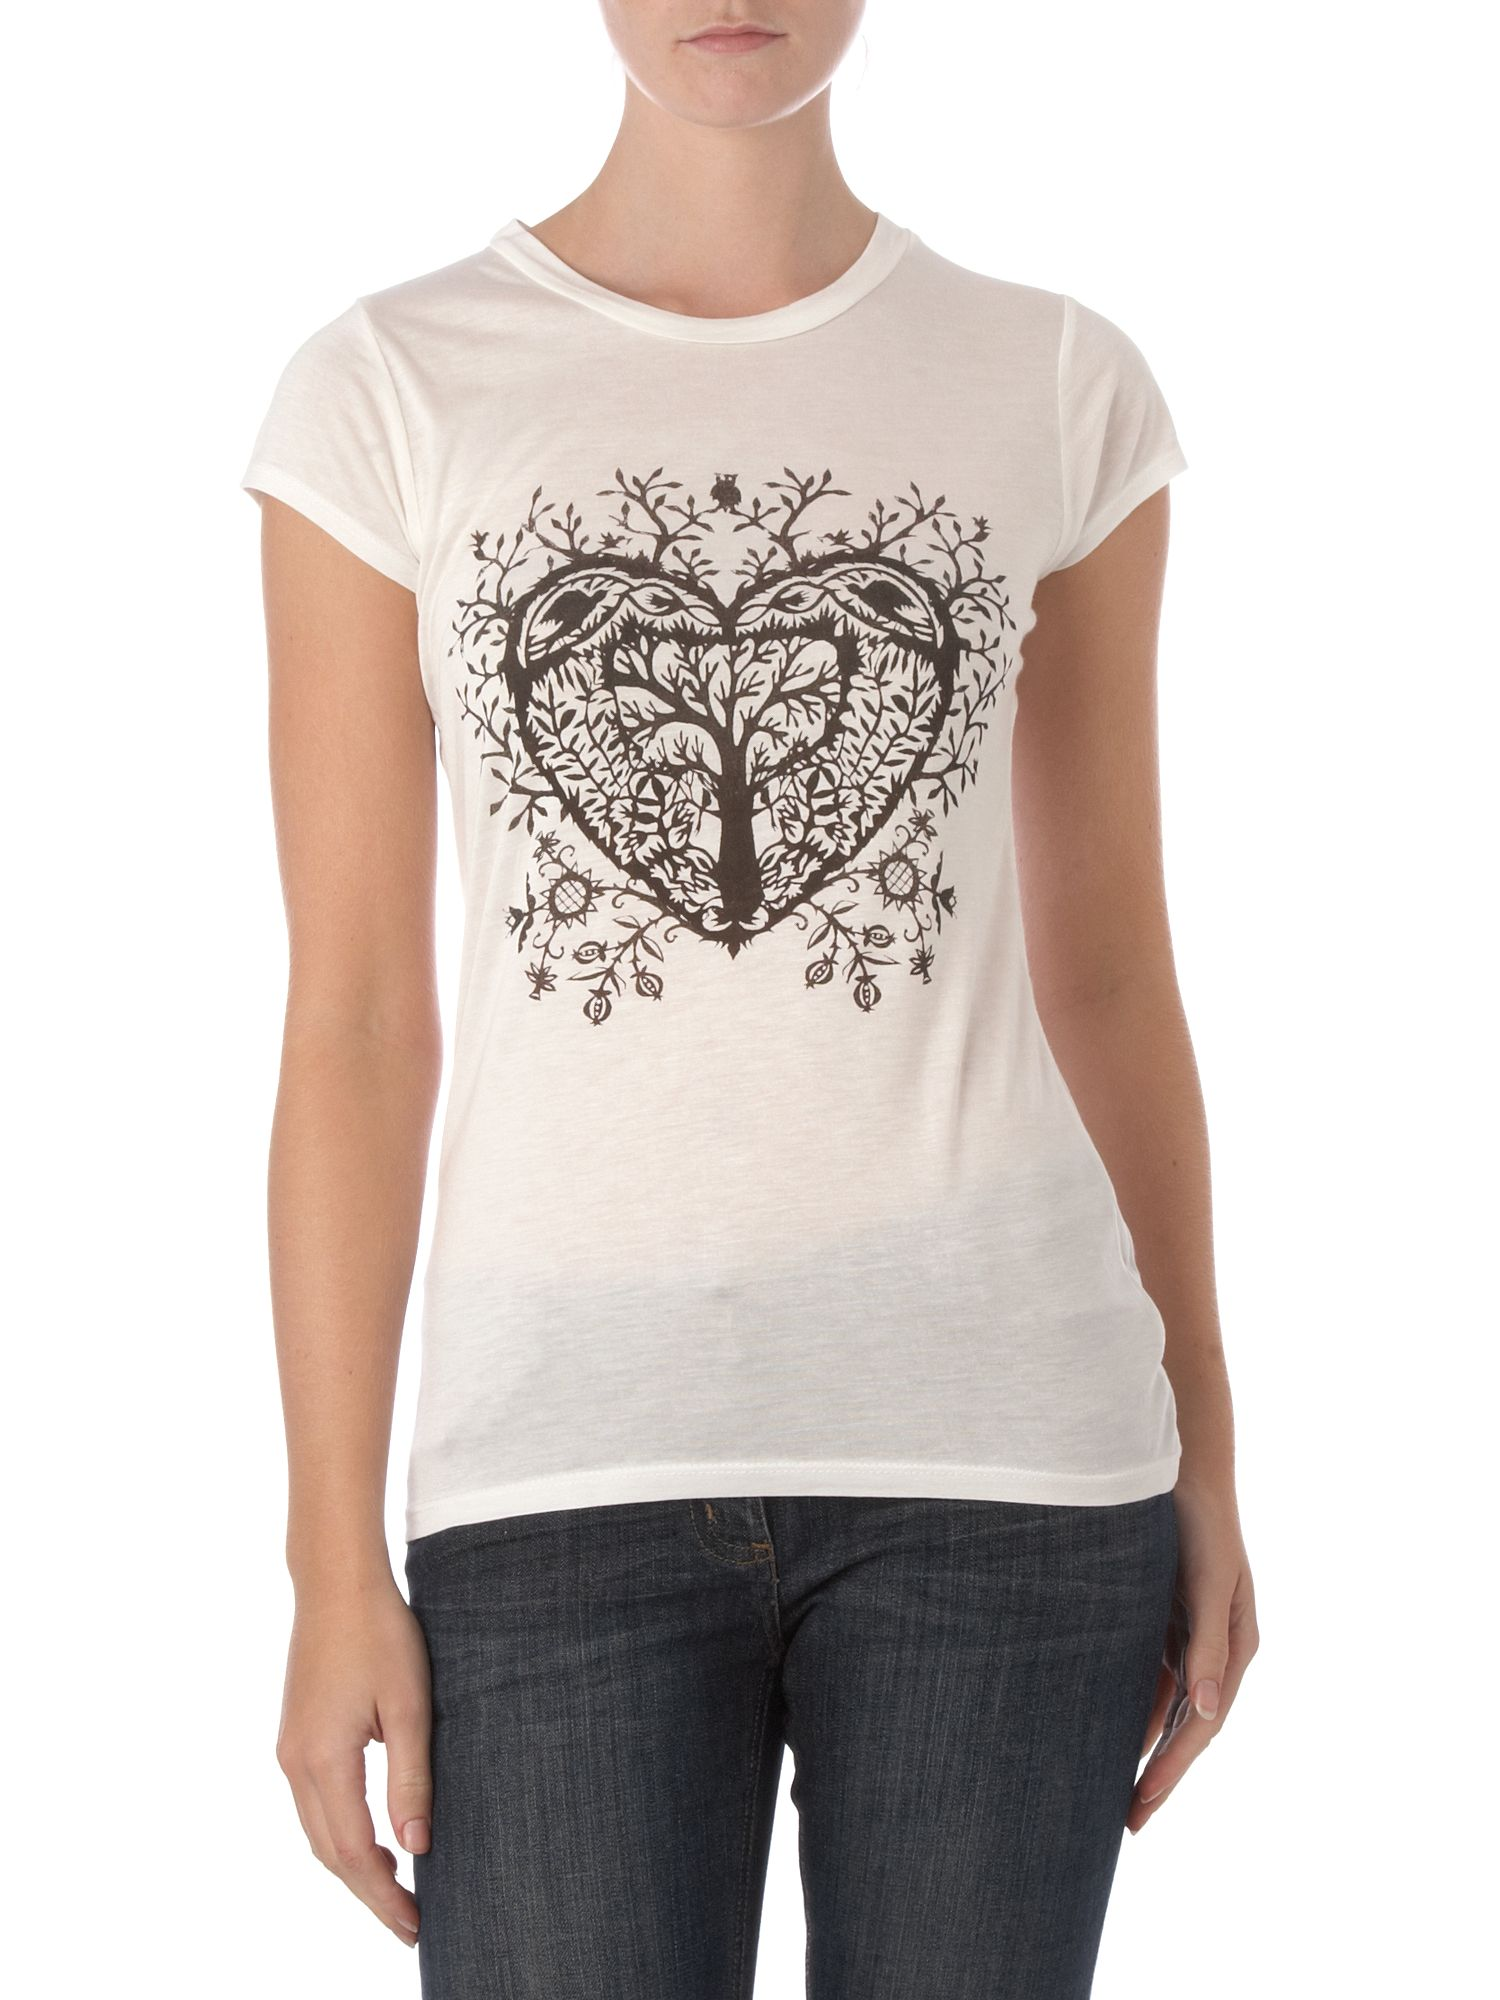 Therapy Heart paper cut out t-shirt - Off White 14 product image